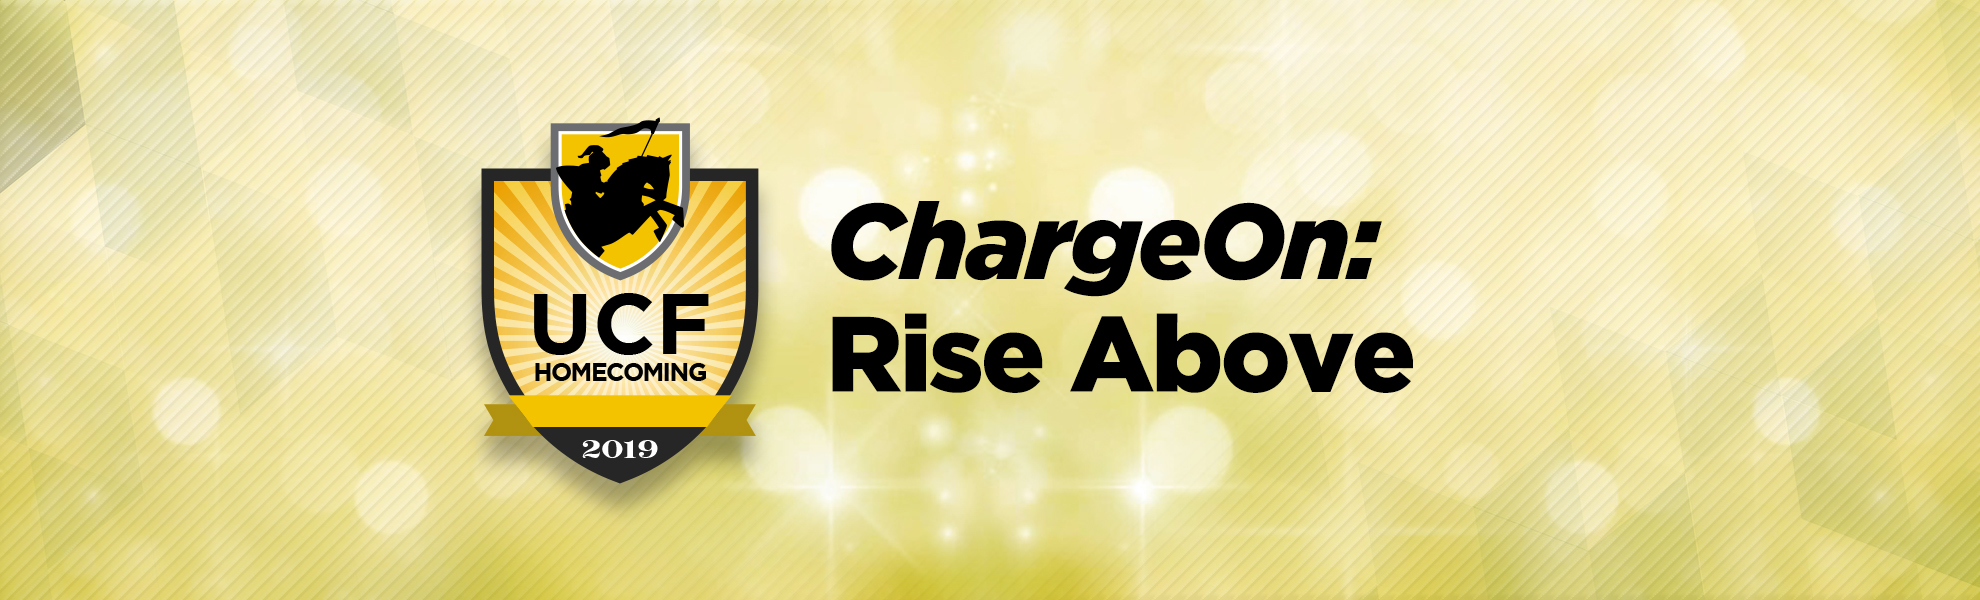 Meet The Charge On: Rise Above Panelists